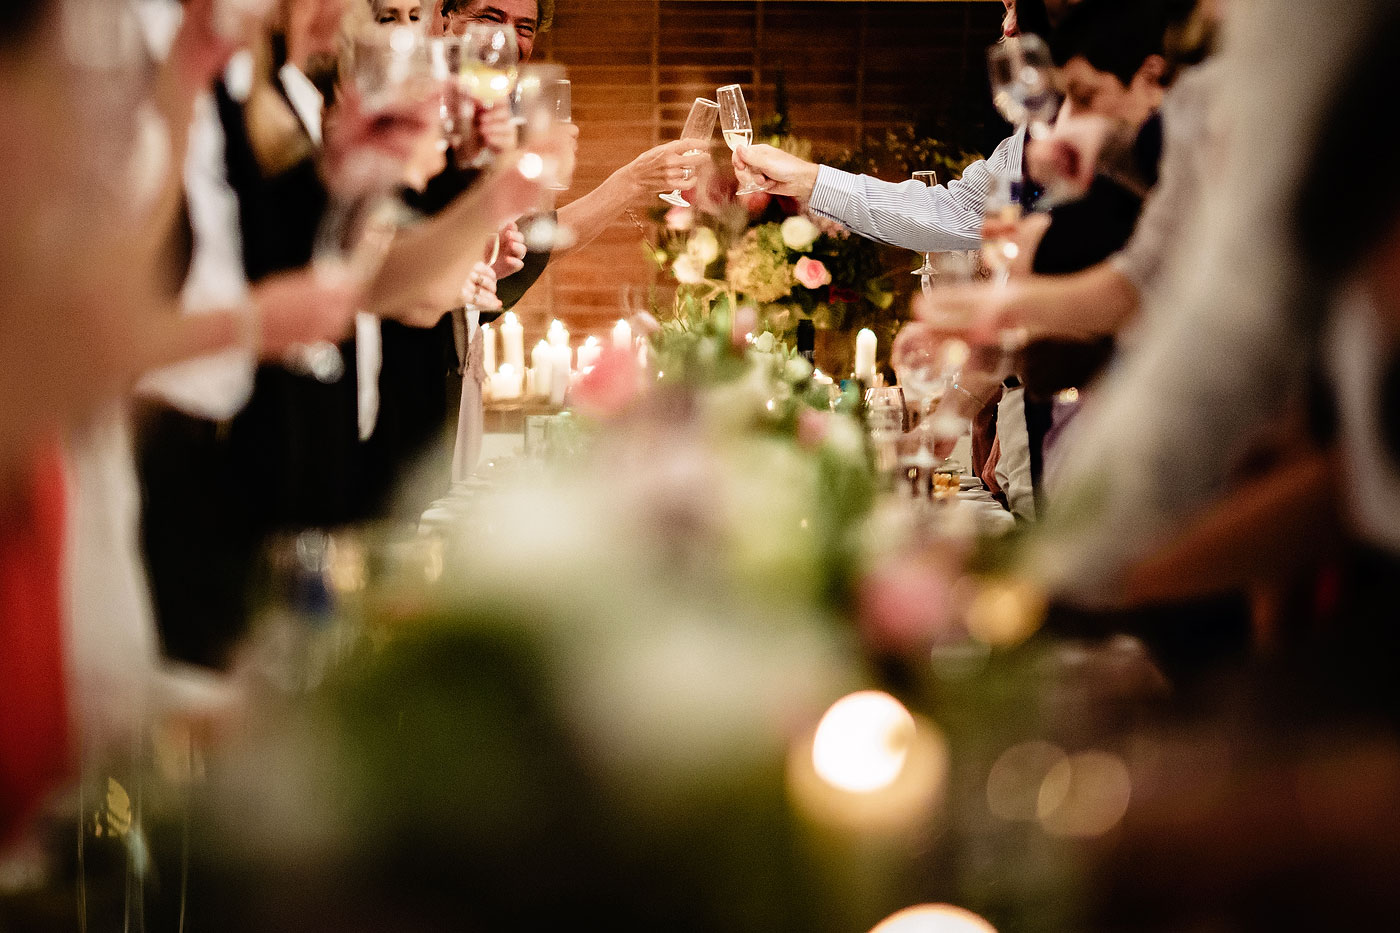 Wedding Toast with Champagne Glasses